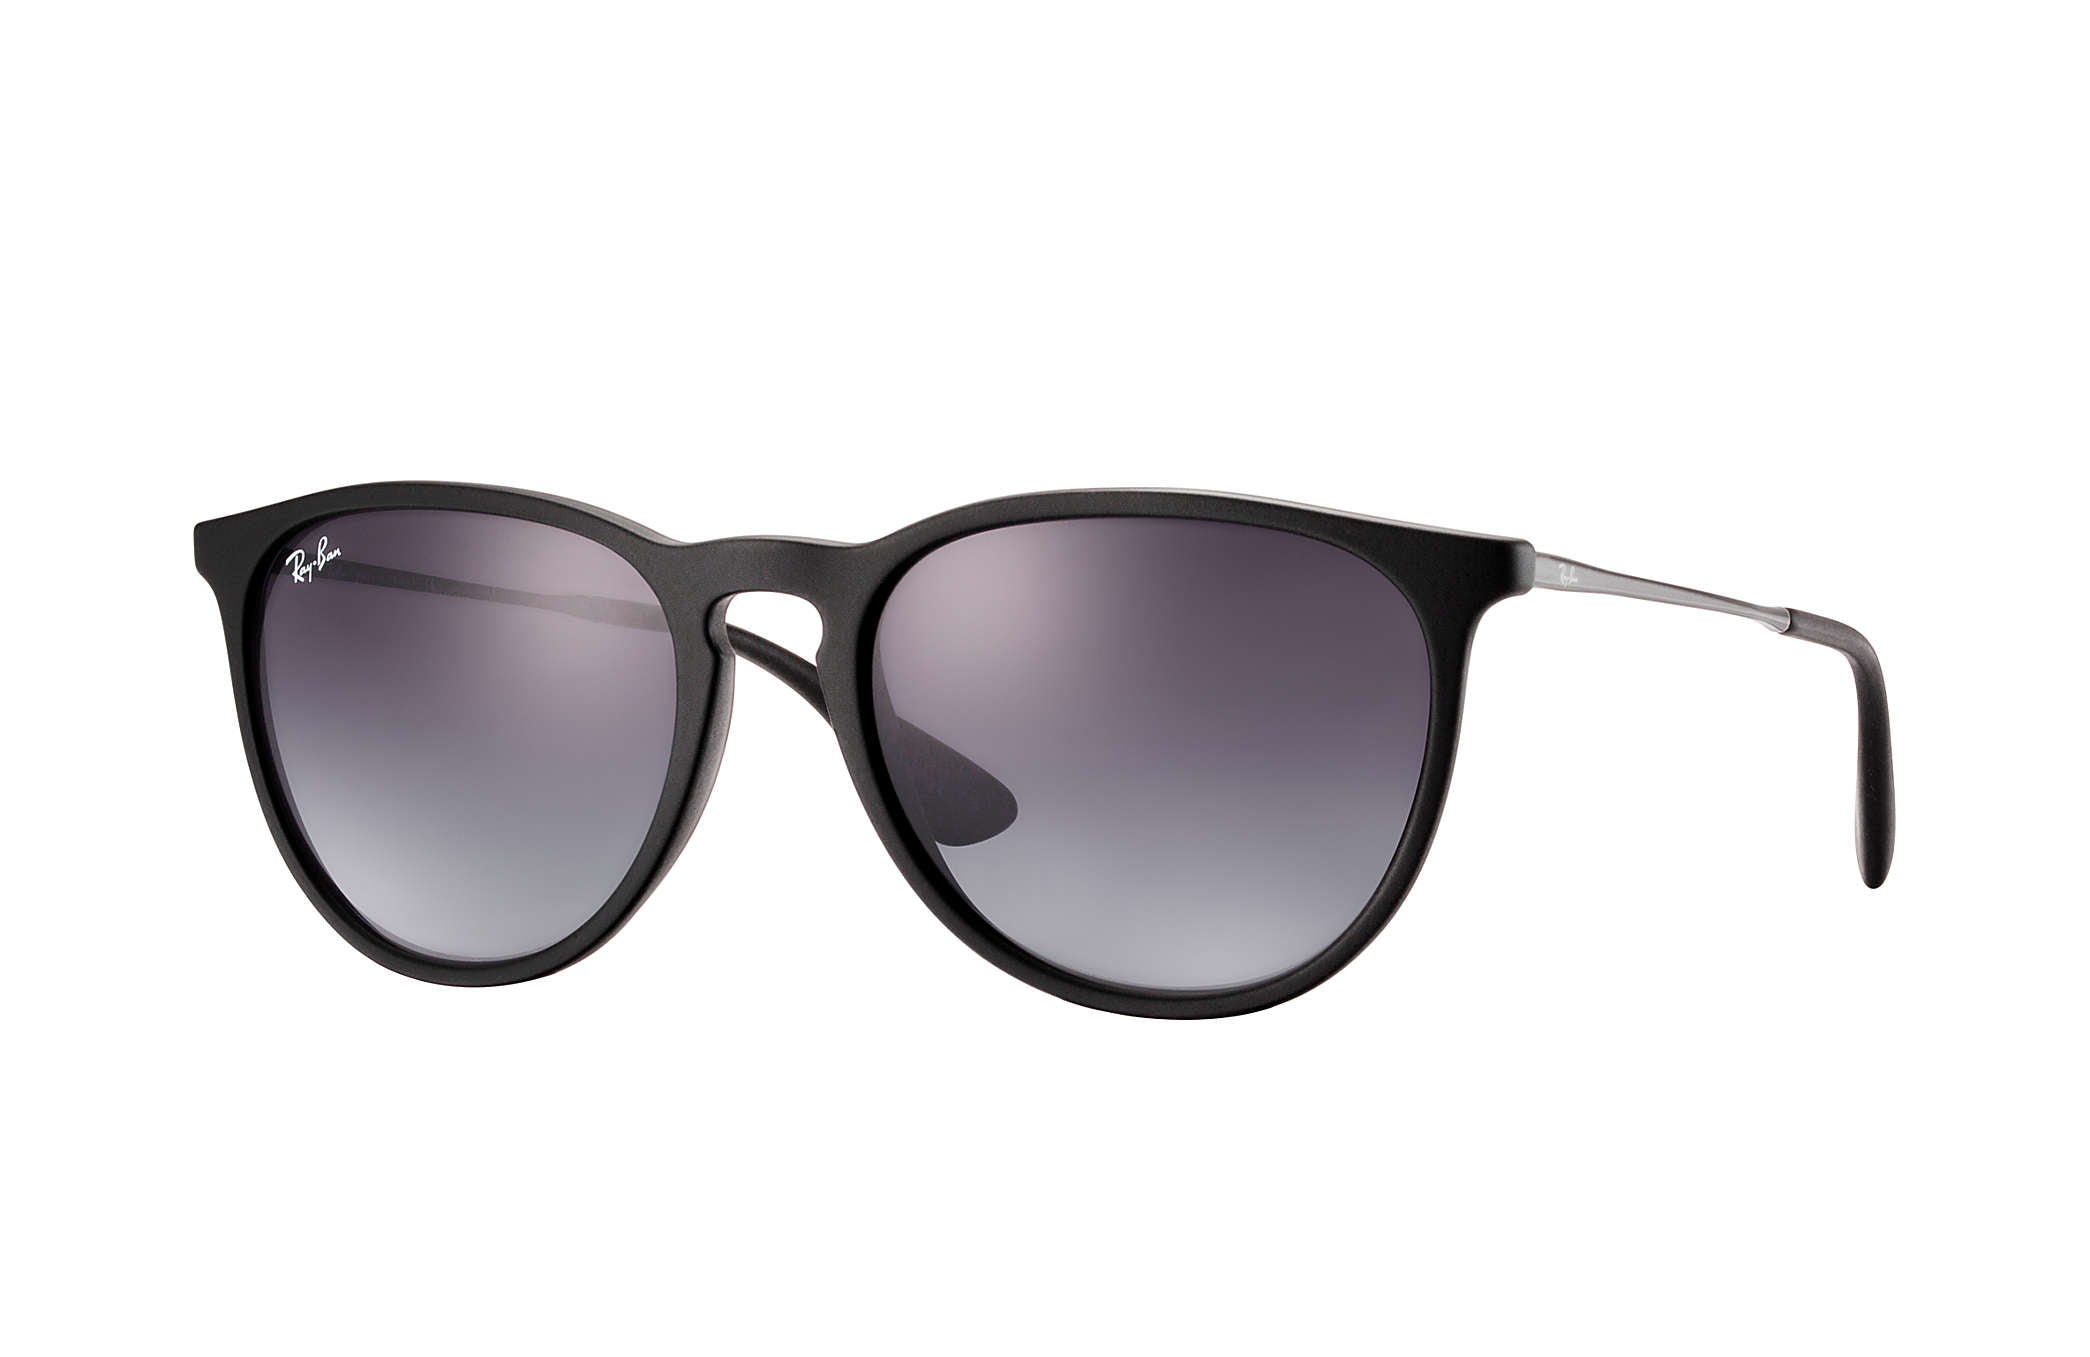 RAY-BAN SUNGLASSES Default ERIKA SUNGLASSES RUBBER BLACK - GREY GRADIENT